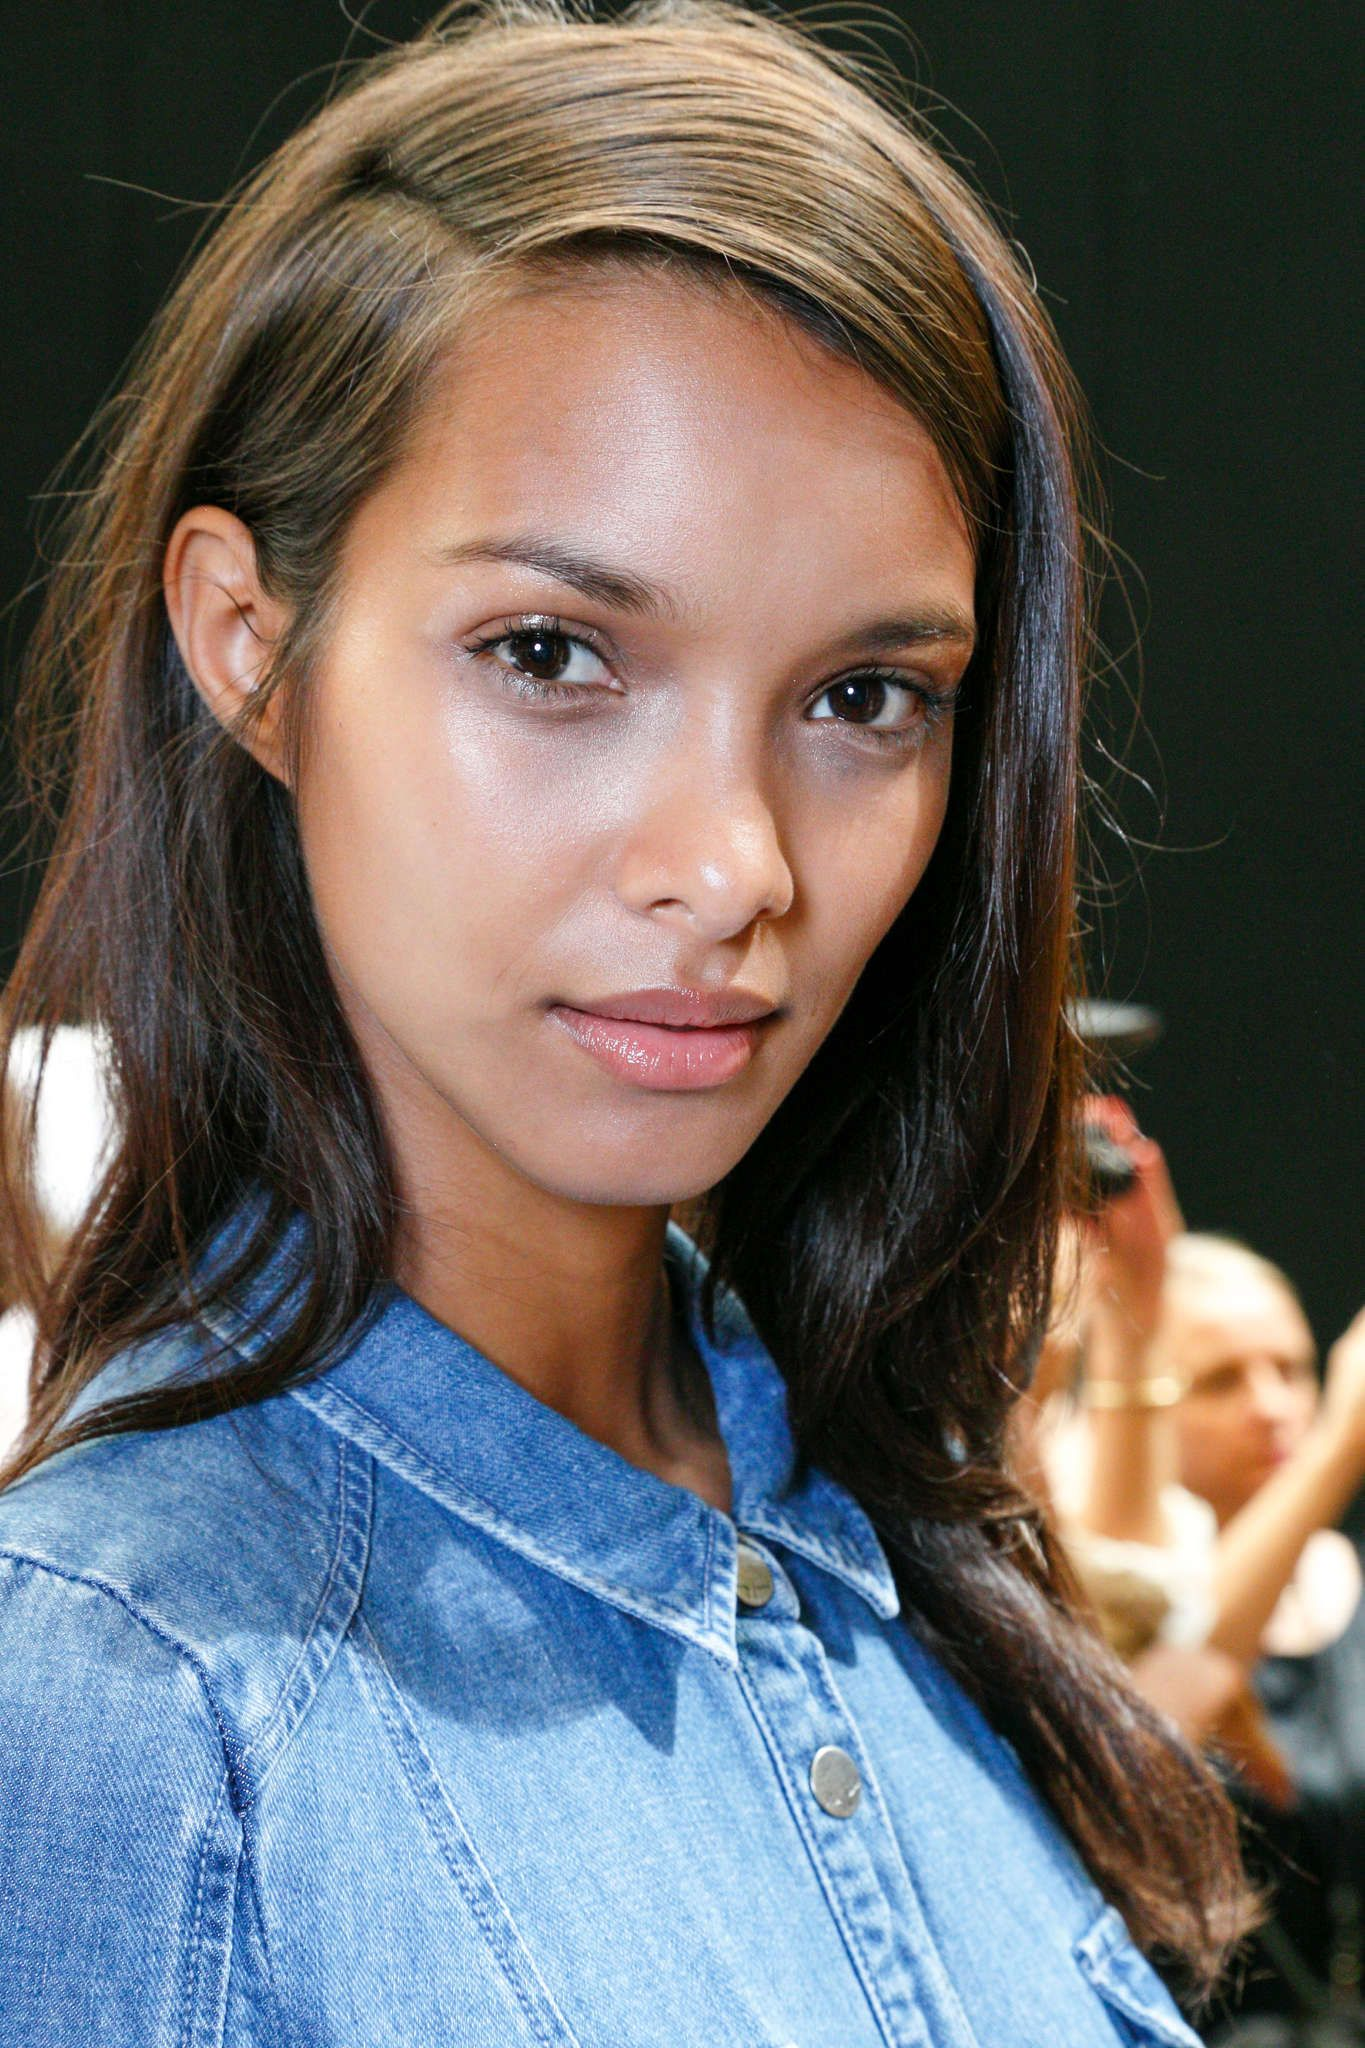 Hacked Lais Ribeiro nude photos 2019